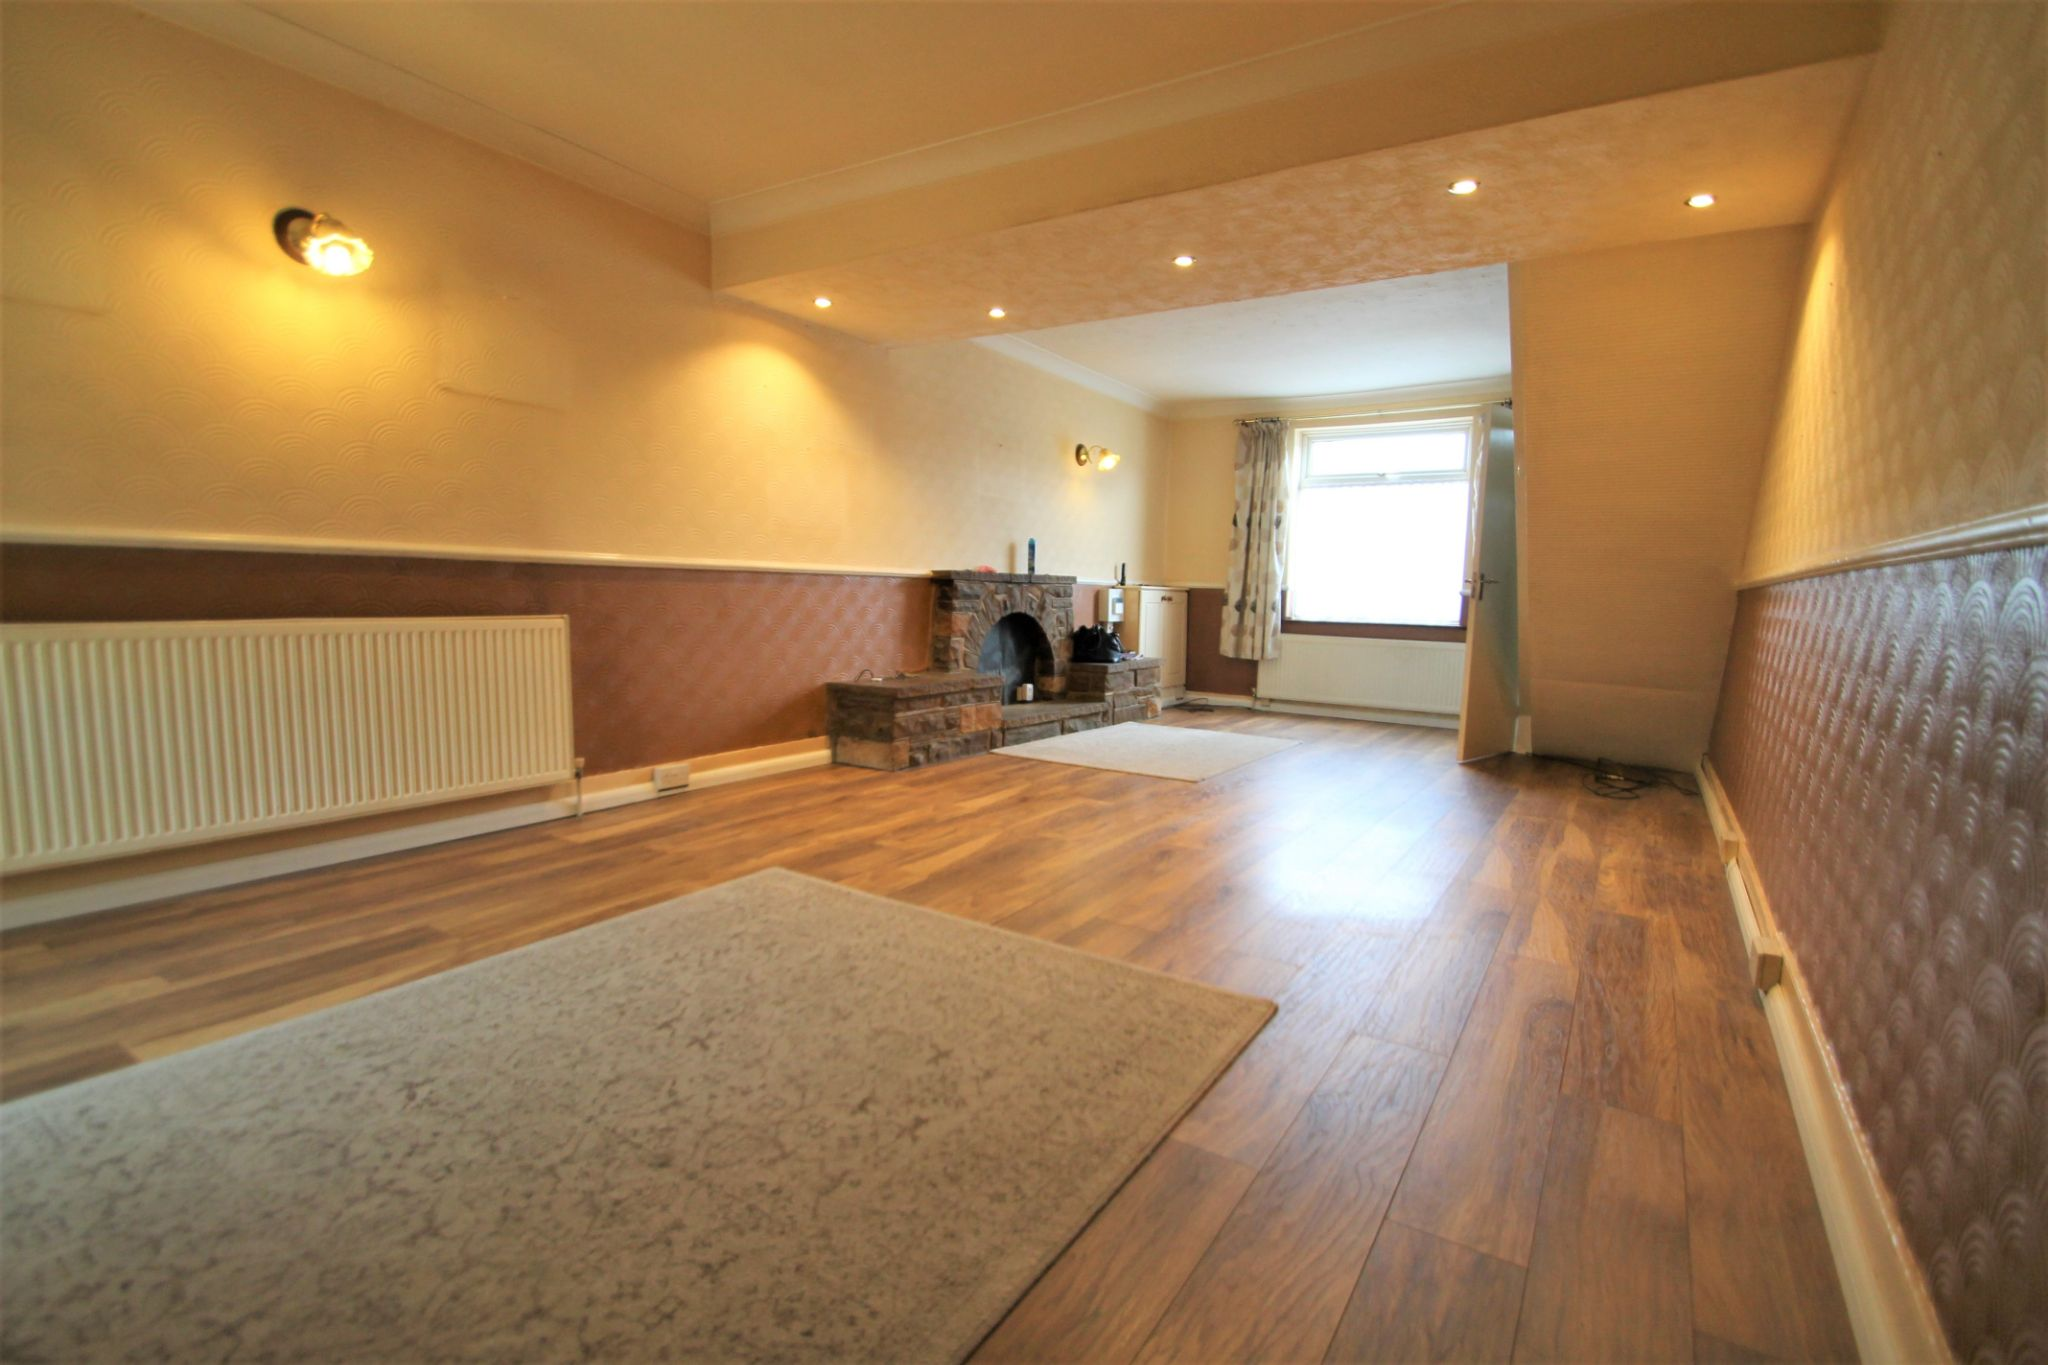 3 Bedroom End Terraced House For Sale - Lounge